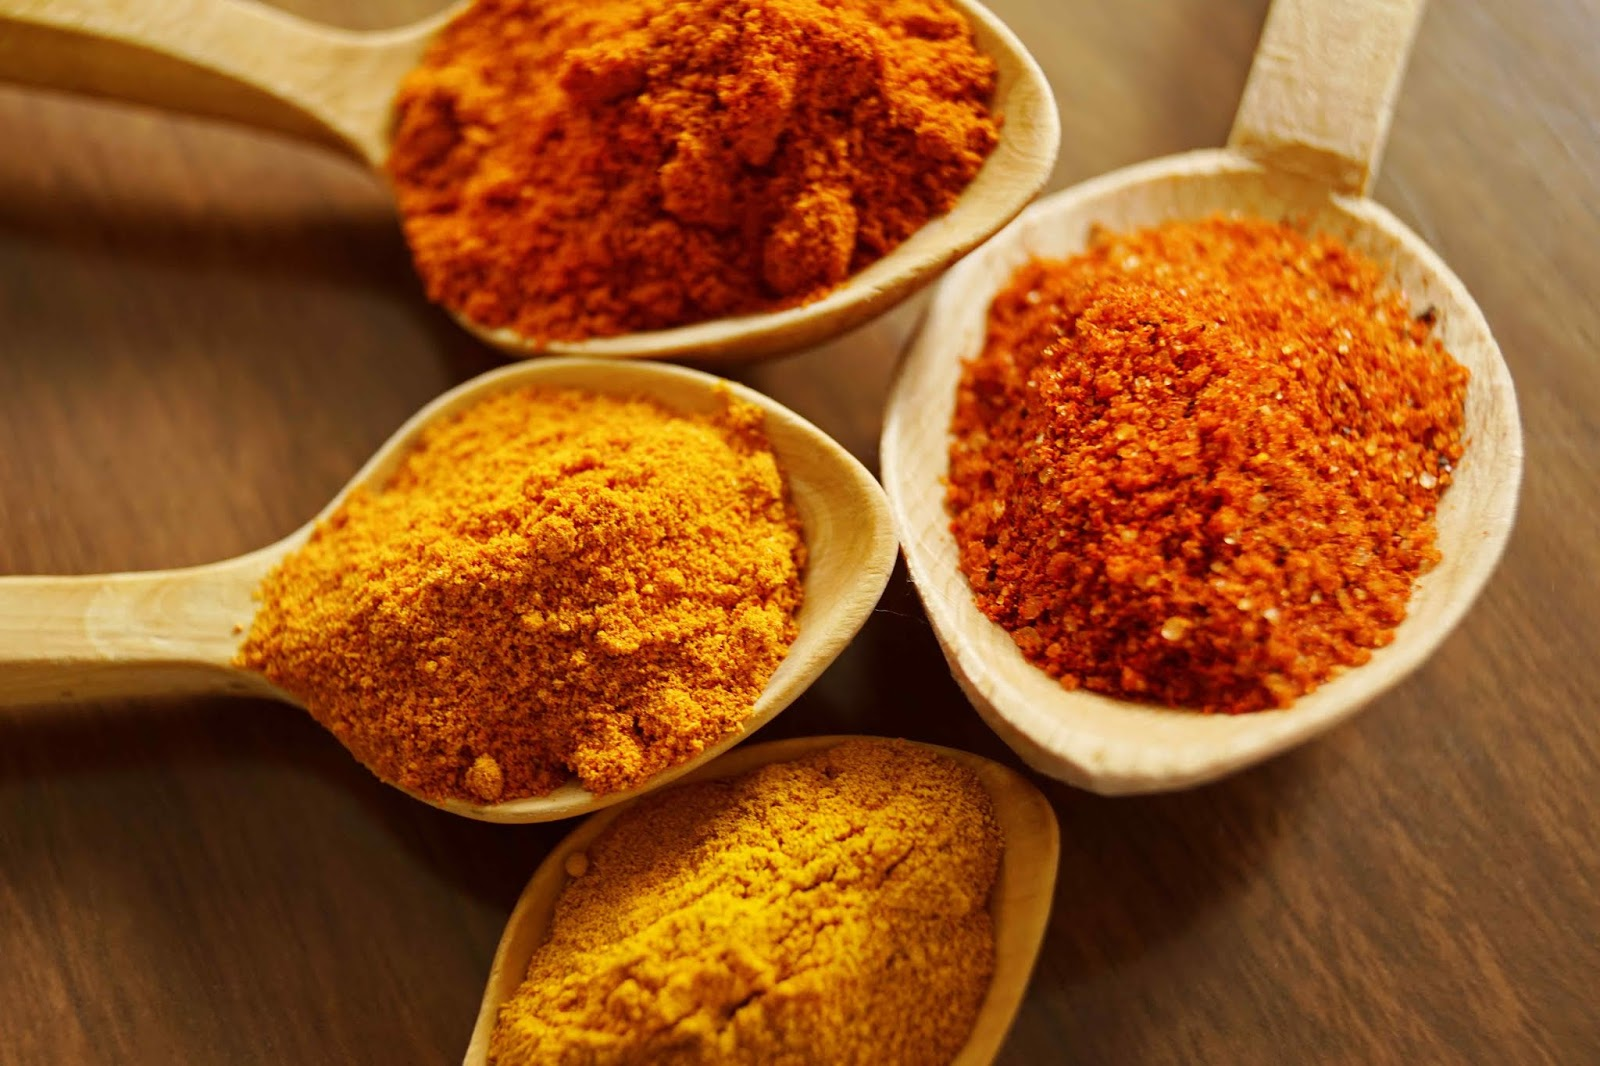 Best Foods to Control Diabetes - Both Type 1 and Type 2 - Turmeric